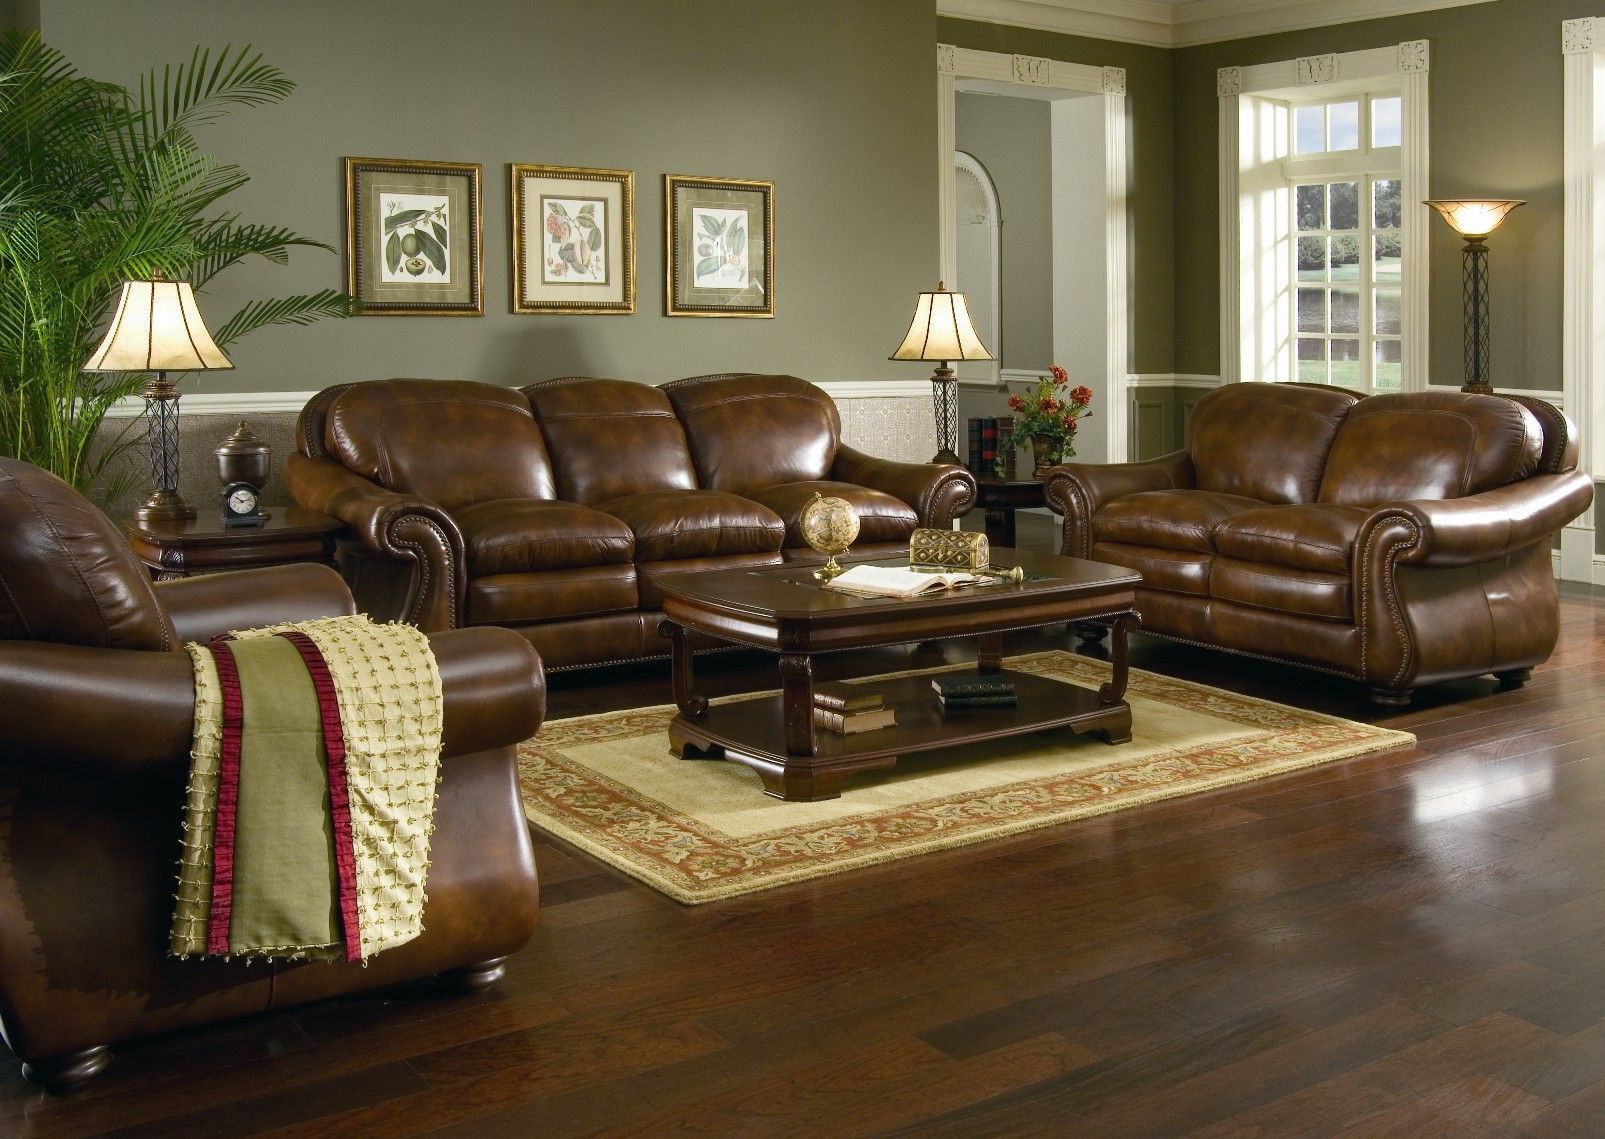 For Furniture In Living Room Brown Leather Sofa Set For Living Room With Dark Hardwood Floors